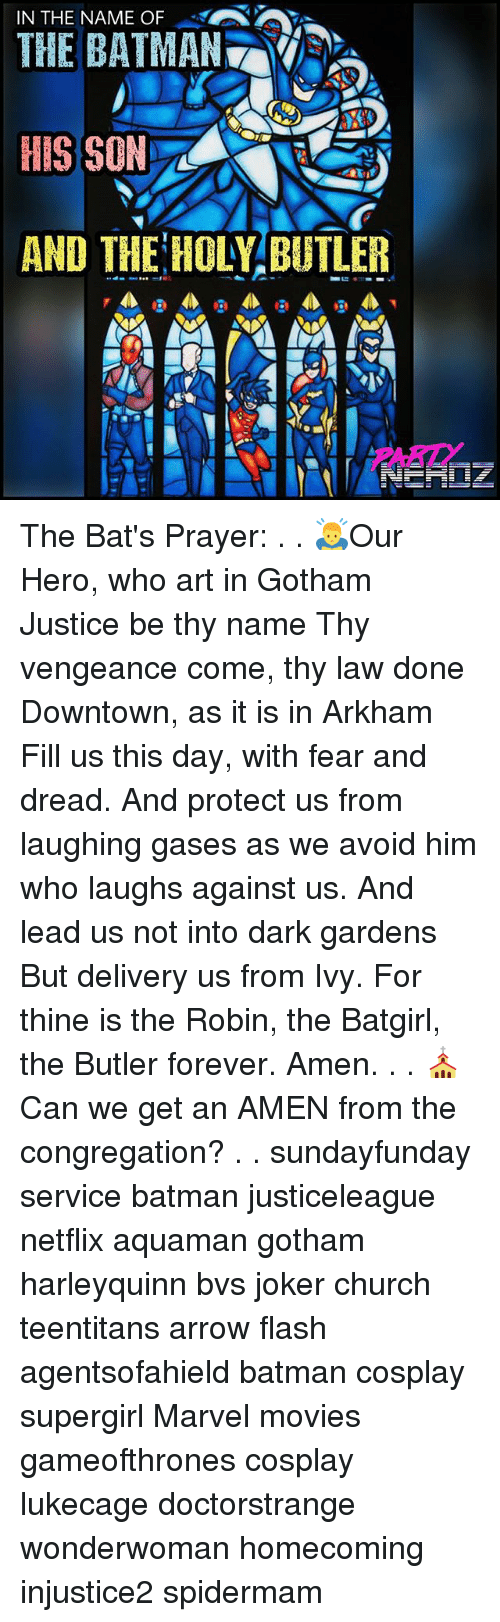 Batman, Church, and Joker: IN THE NAME O  THE BATMAN  HIS SON  AND THE HOLY BUTLER The Bat's Prayer: . . 🙇Our Hero, who art in Gotham Justice be thy name Thy vengeance come, thy law done Downtown, as it is in Arkham Fill us this day, with fear and dread. And protect us from laughing gases as we avoid him who laughs against us. And lead us not into dark gardens But delivery us from Ivy. For thine is the Robin, the Batgirl, the Butler forever. Amen. . . ⛪Can we get an AMEN from the congregation? . . sundayfunday service batman justiceleague netflix aquaman gotham harleyquinn bvs joker church teentitans arrow flash agentsofahield batman cosplay supergirl Marvel movies gameofthrones cosplay lukecage doctorstrange wonderwoman homecoming injustice2 spidermam